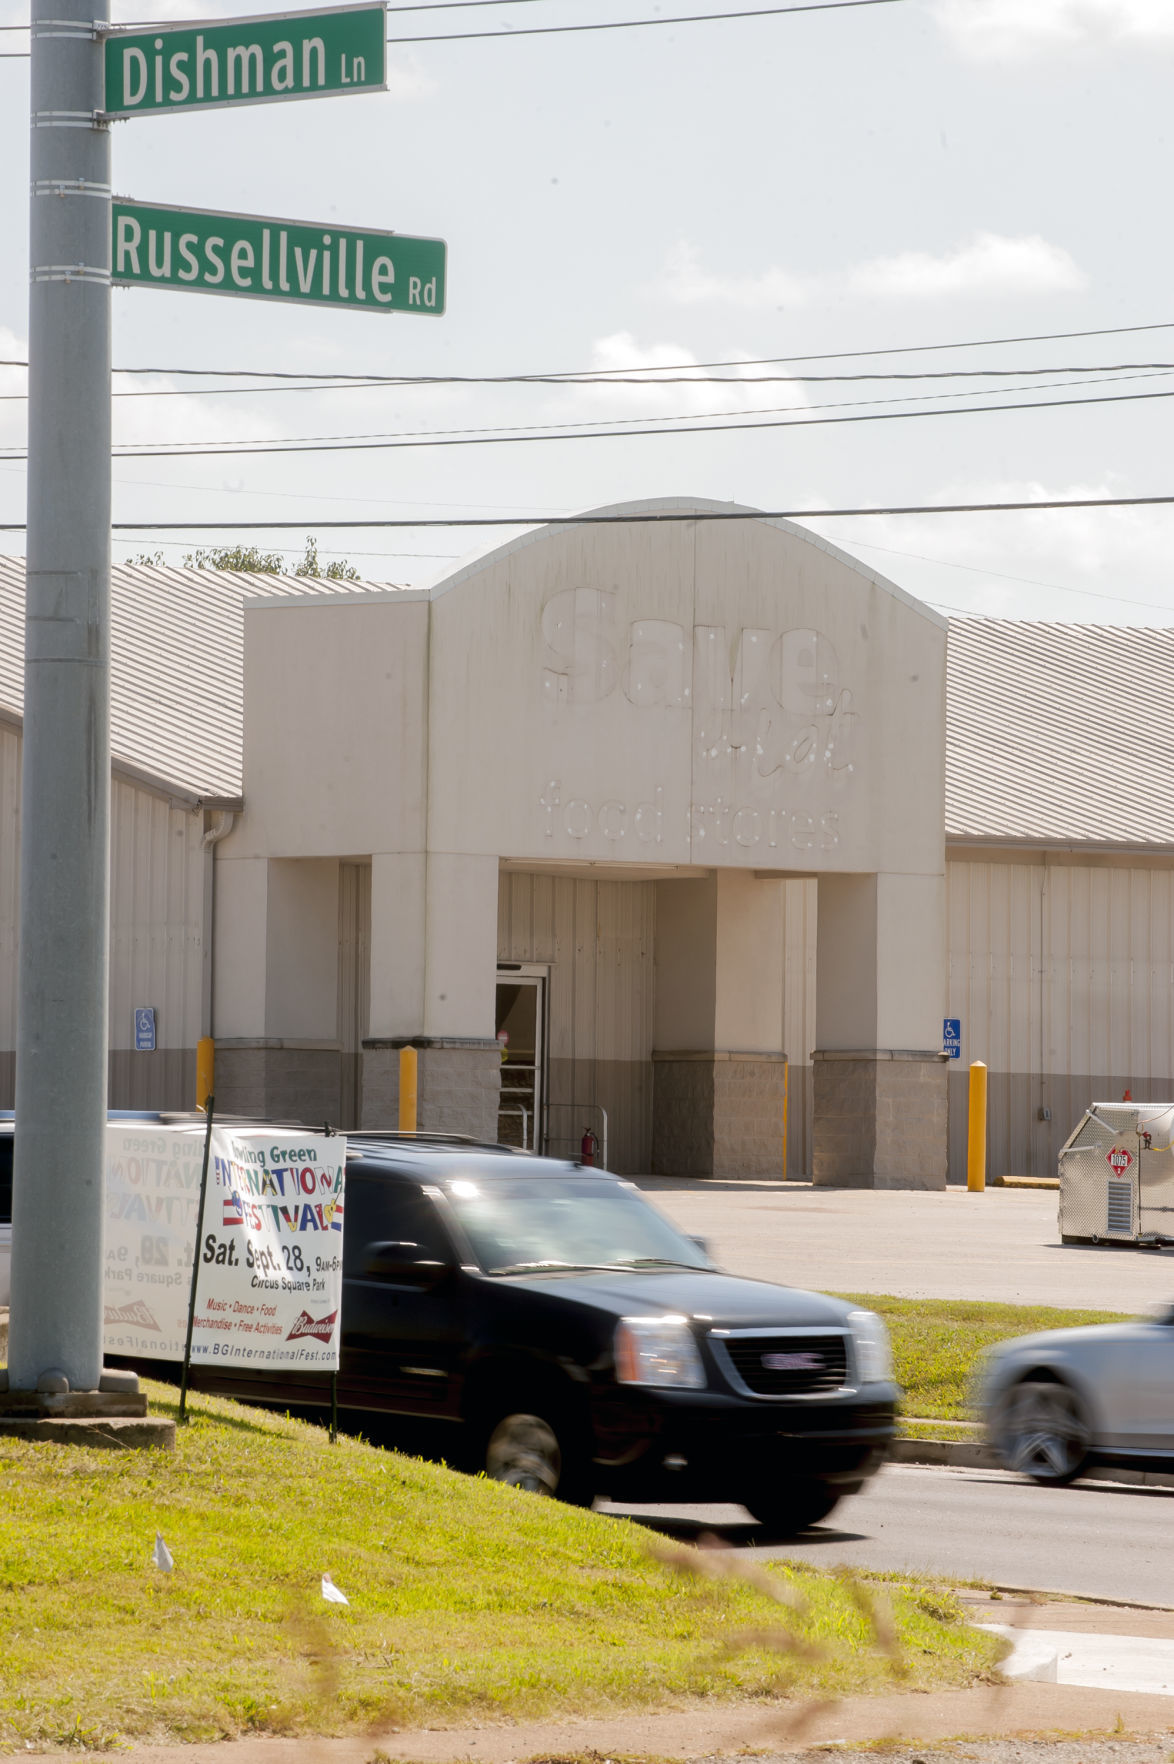 Ace Hardware to replace Russellville Road Save-A-Lot